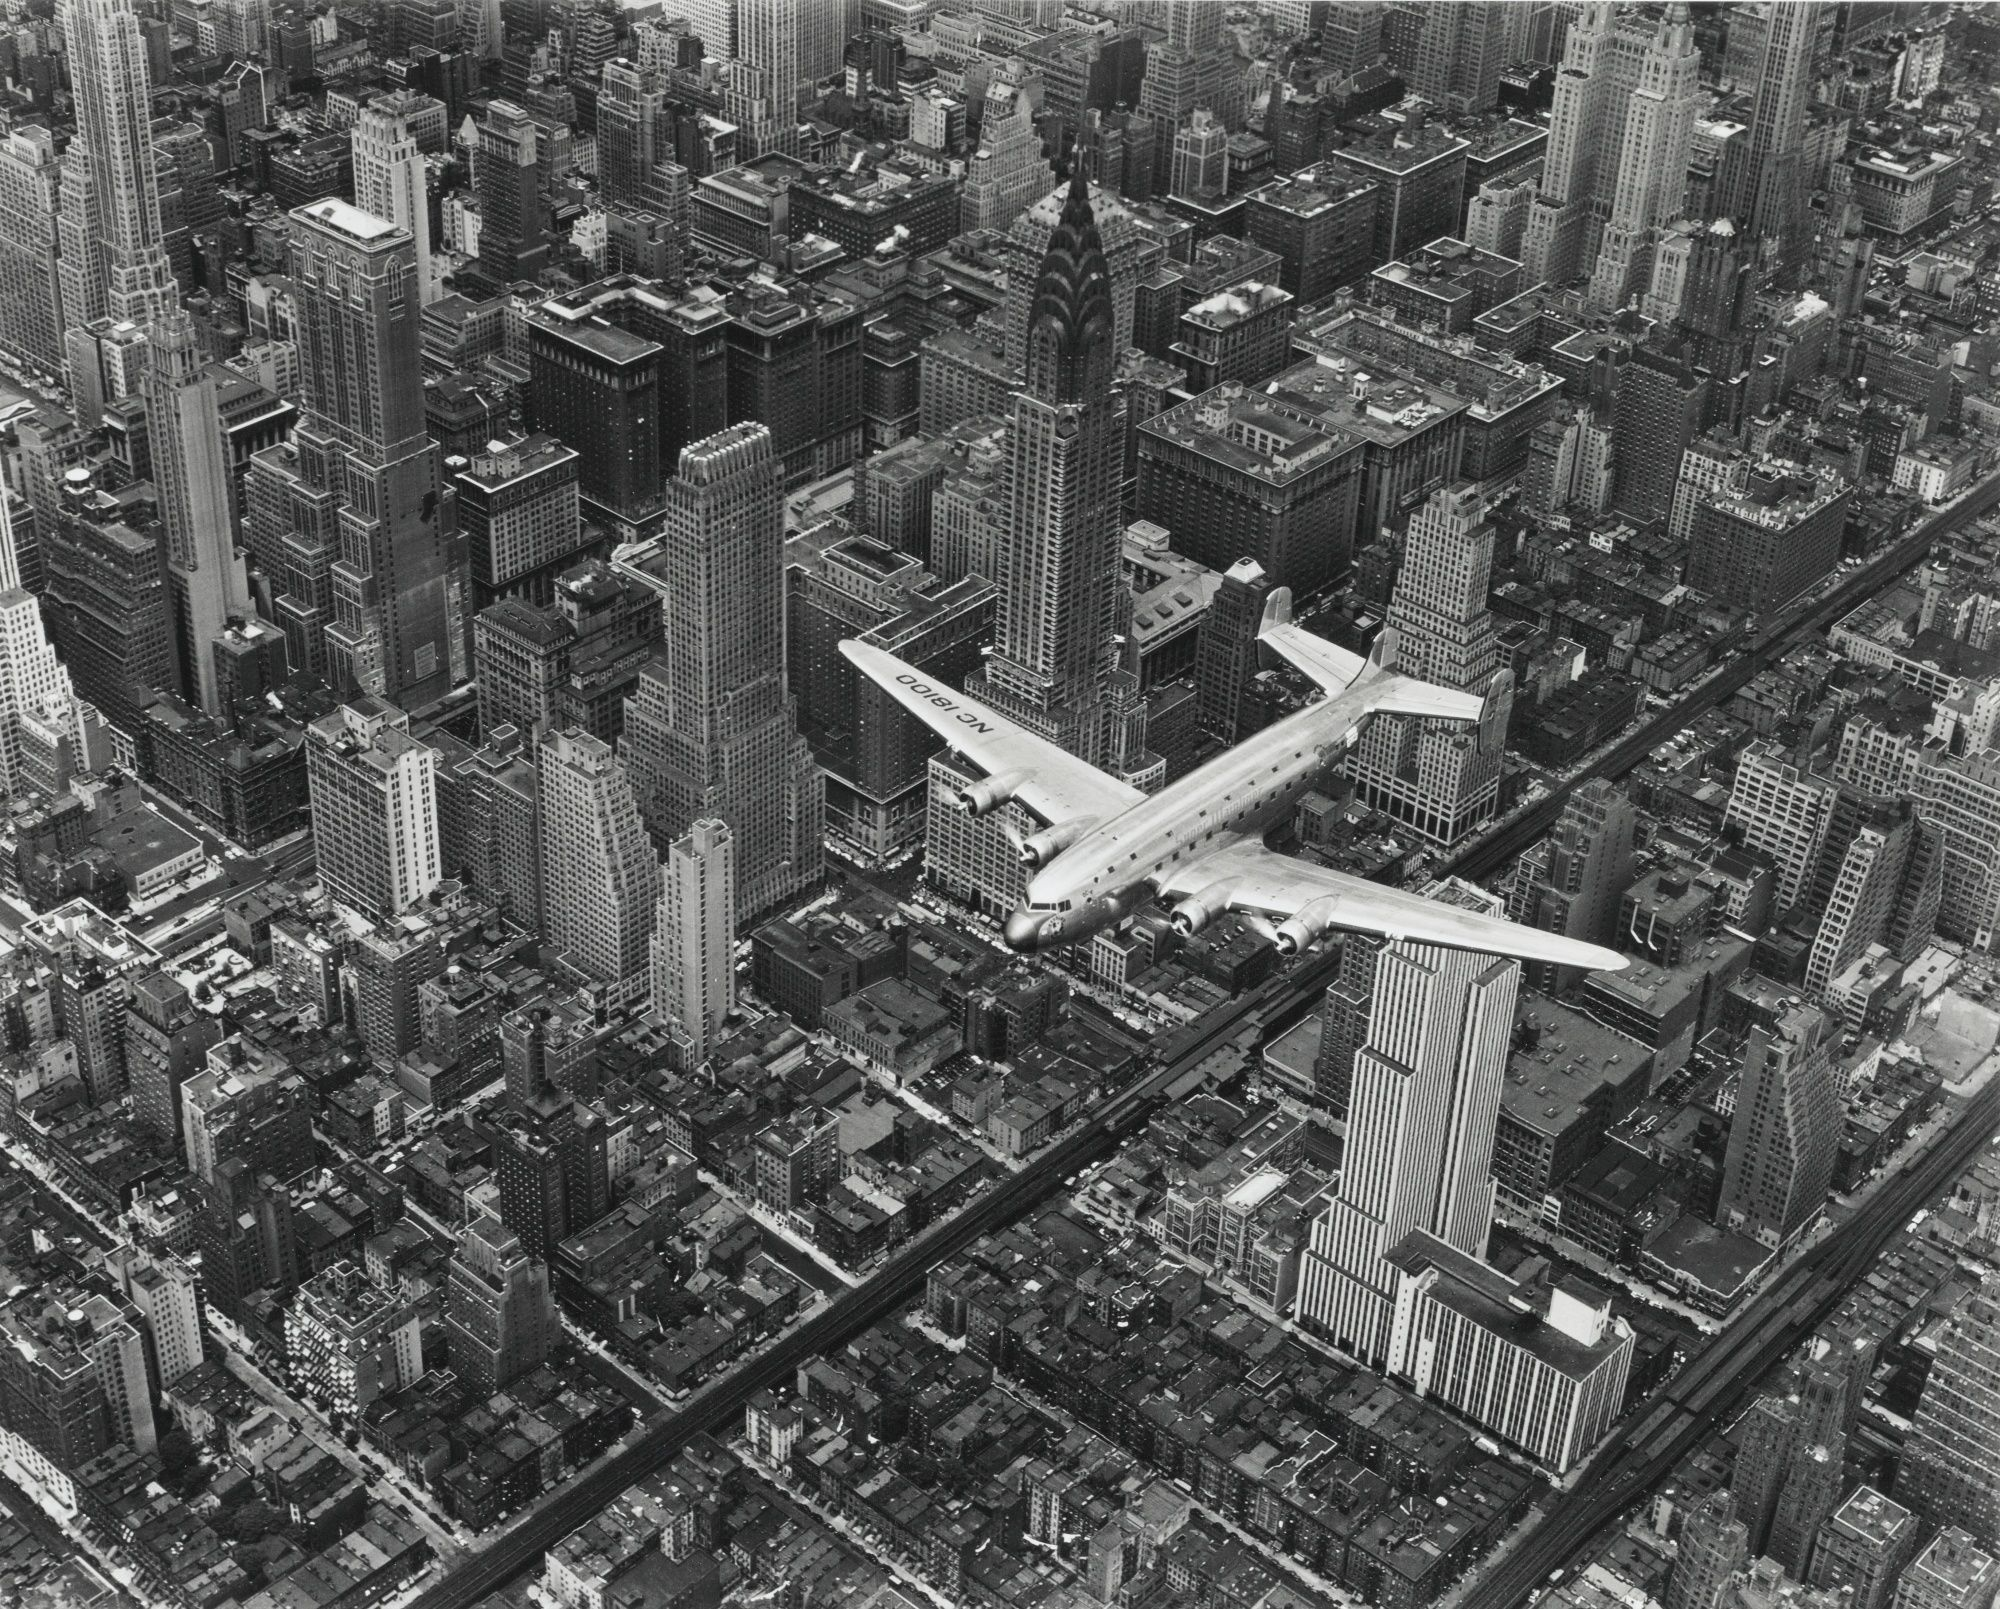 DC4 Flying Over New York City, 1942 by Margaret Bourke